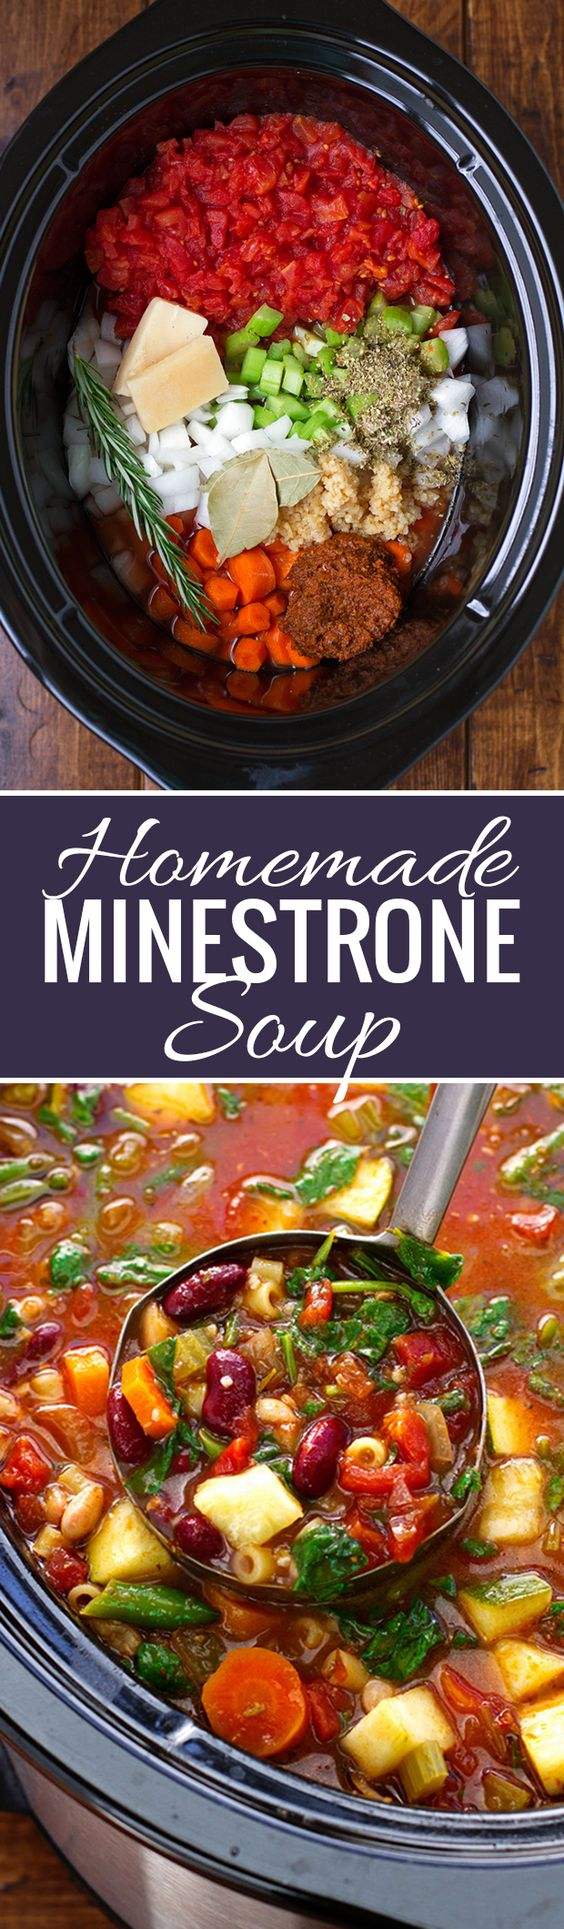 Homemade Crock Pot Minestrone Soup Recipe | Little Spice Jar - The BEST Homemade Soups Recipes - Easy, Quick and Yummy Lunch and Dinner Family Favorites Meals Ideas #soup #souprecipes #homemadesoup #soups #easysouprecipes #easyrecipes #lunchrecipes #fallrecipes #winterrecipes